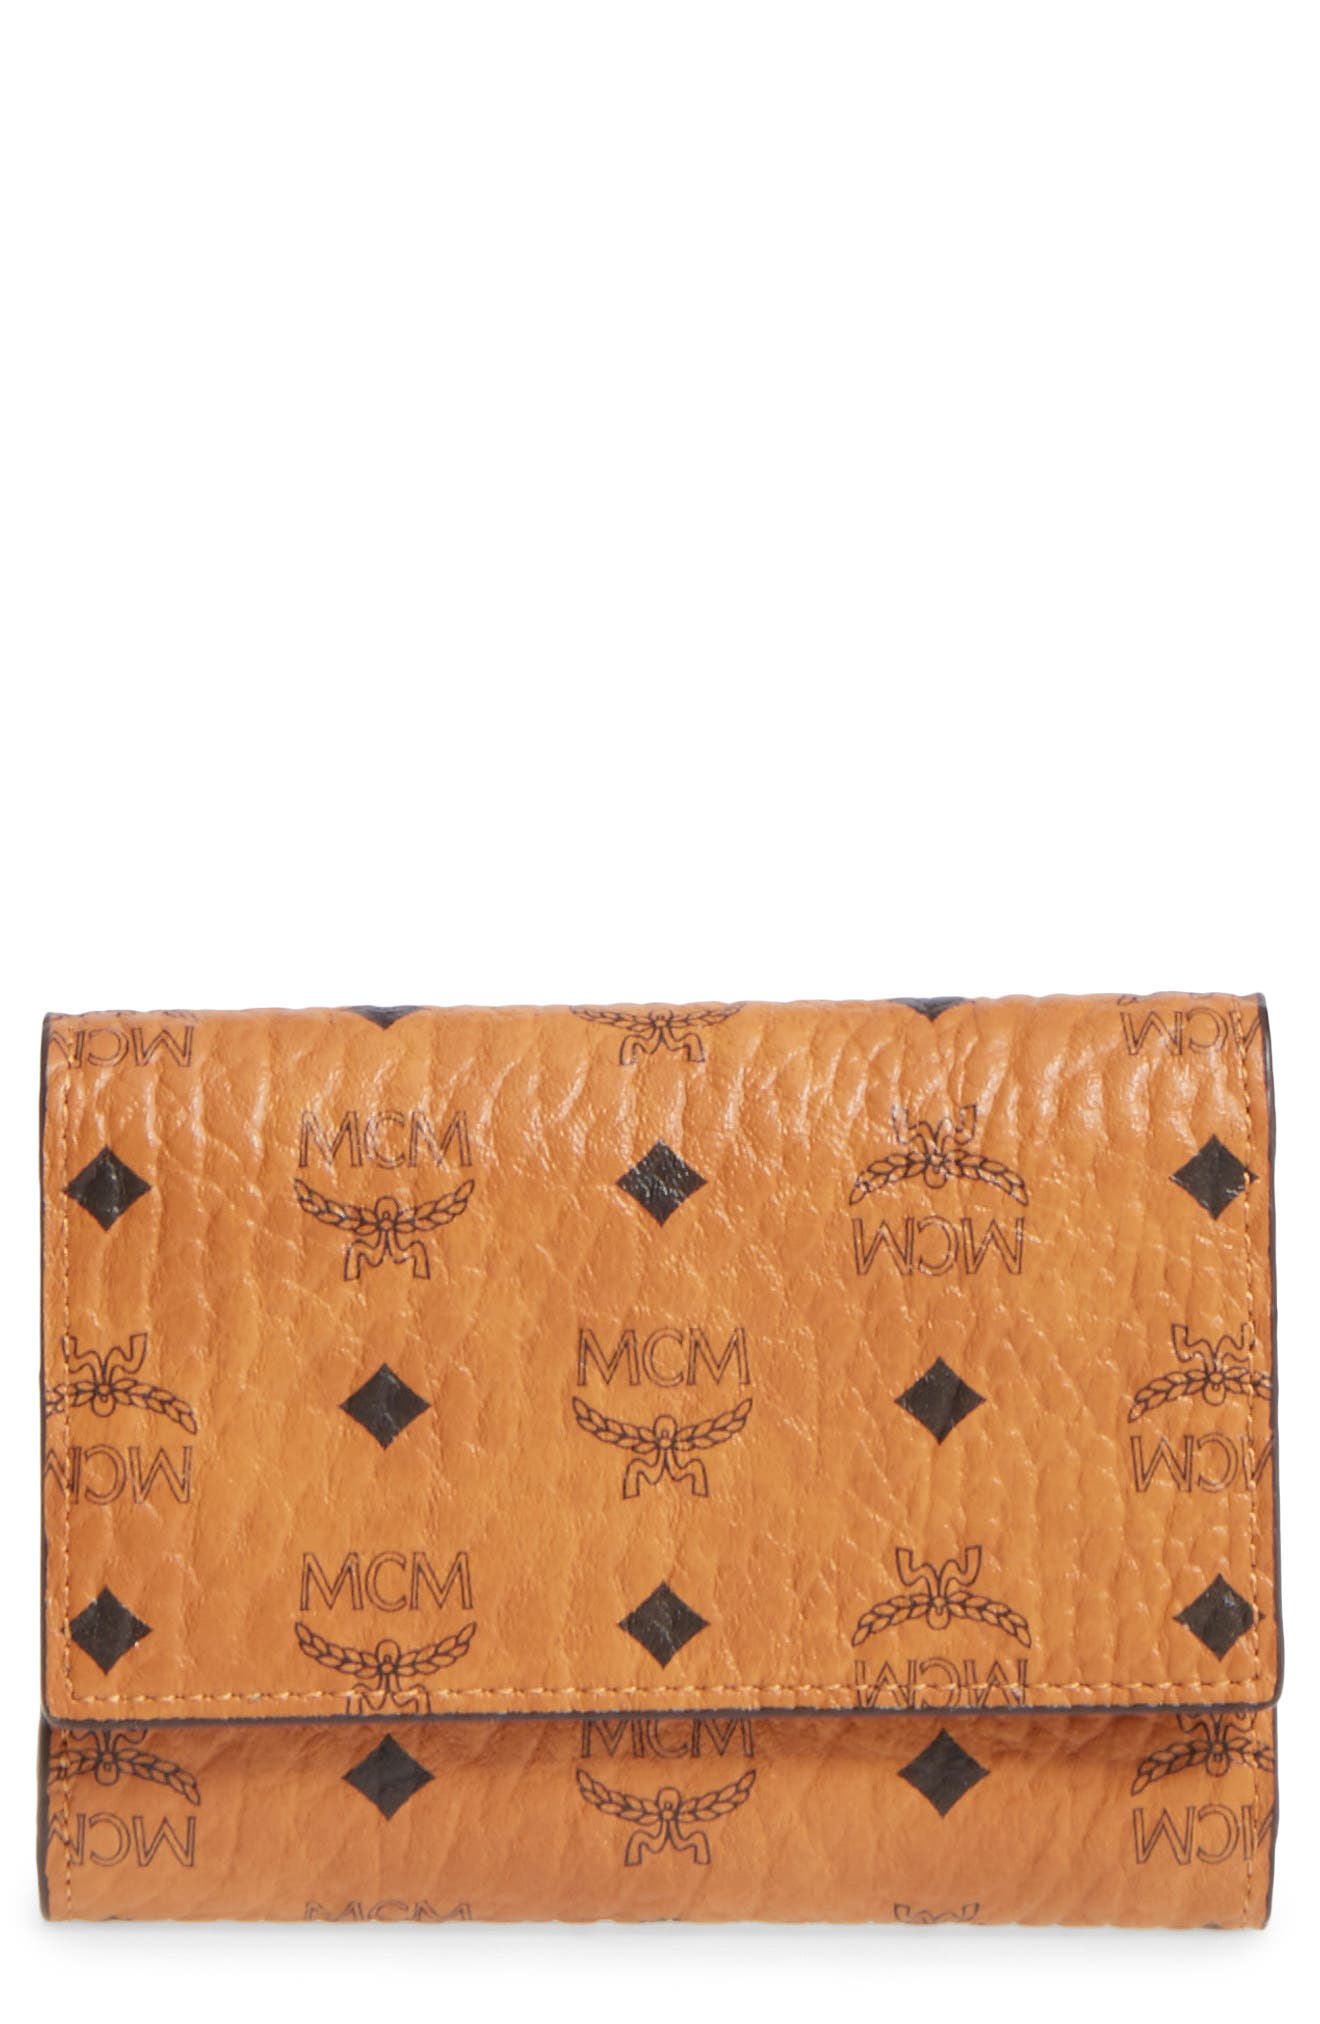 MCM Original Small Visetos Trifold Wallet